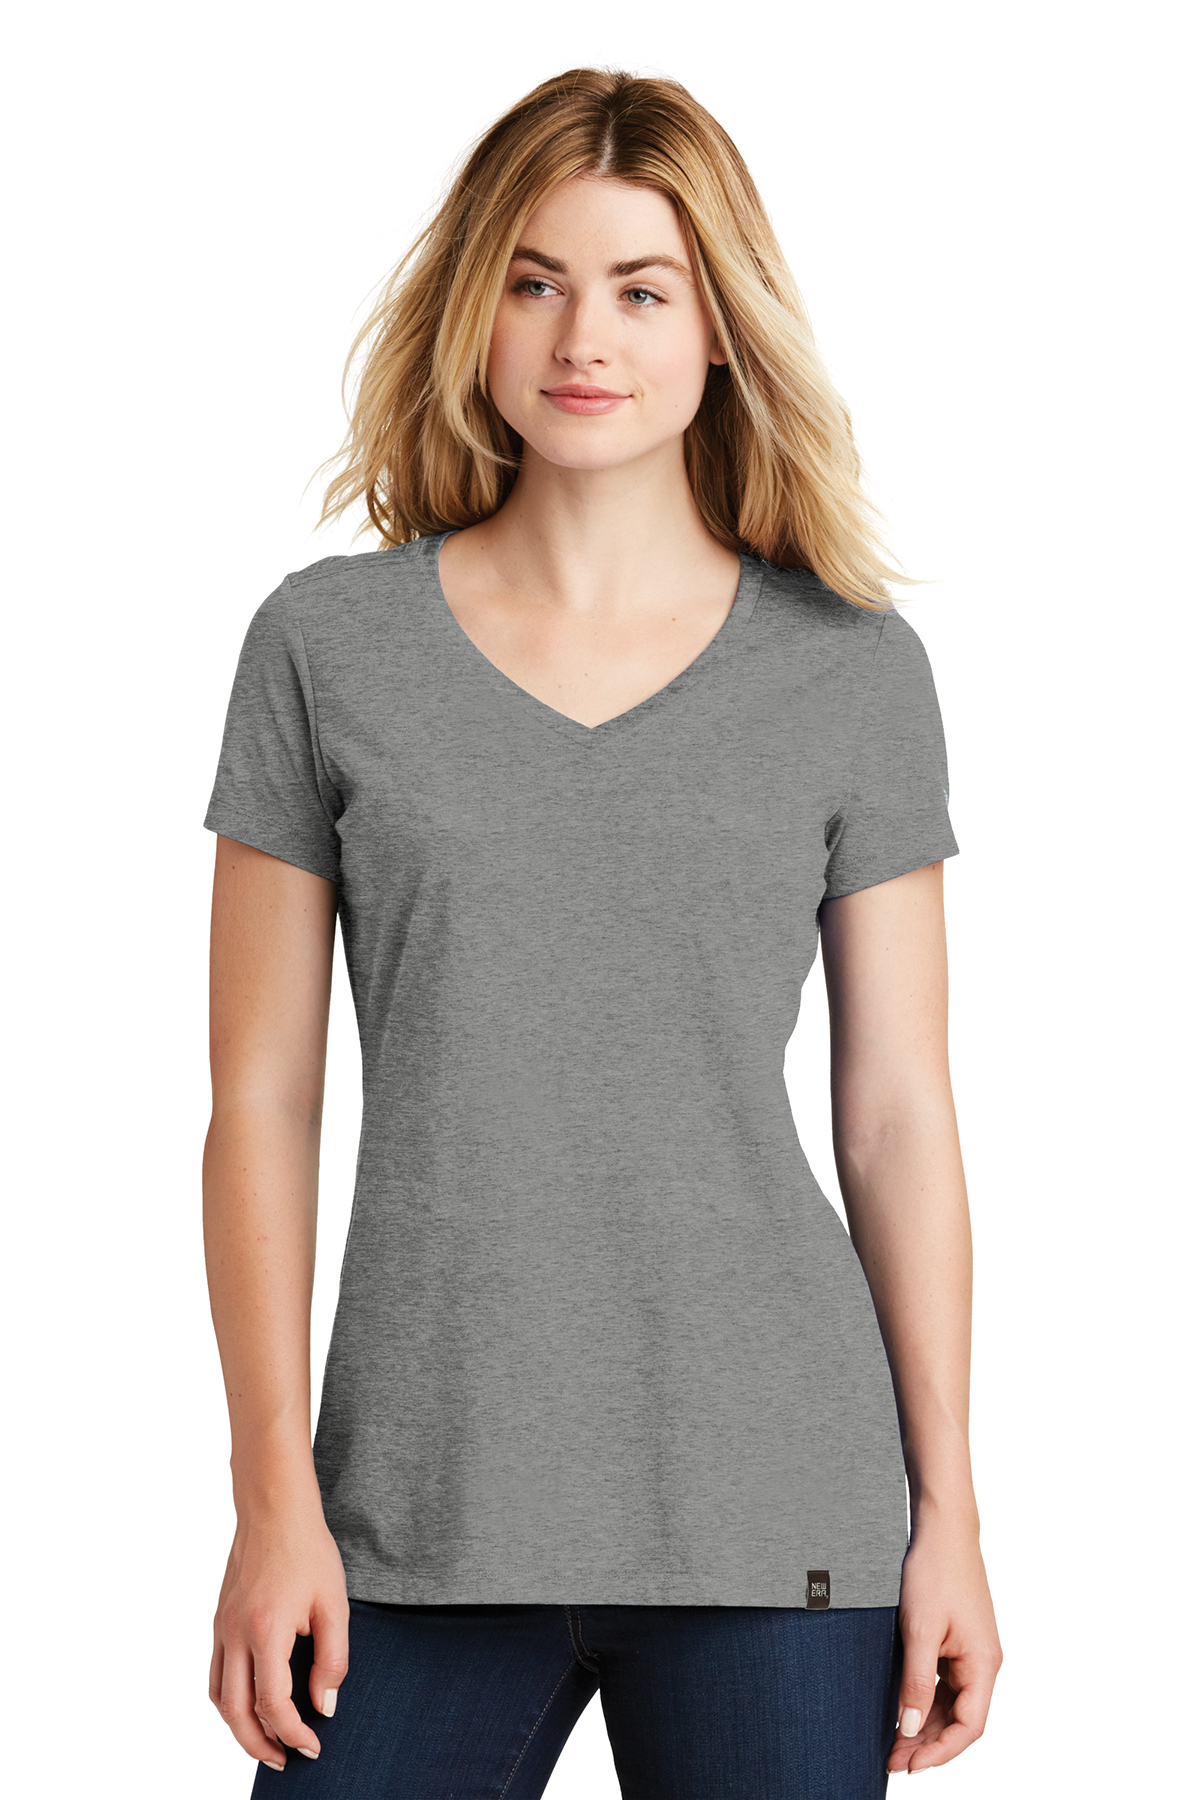 New Era LNEA101 - Ladies Heritage Blend V-Neck Tee